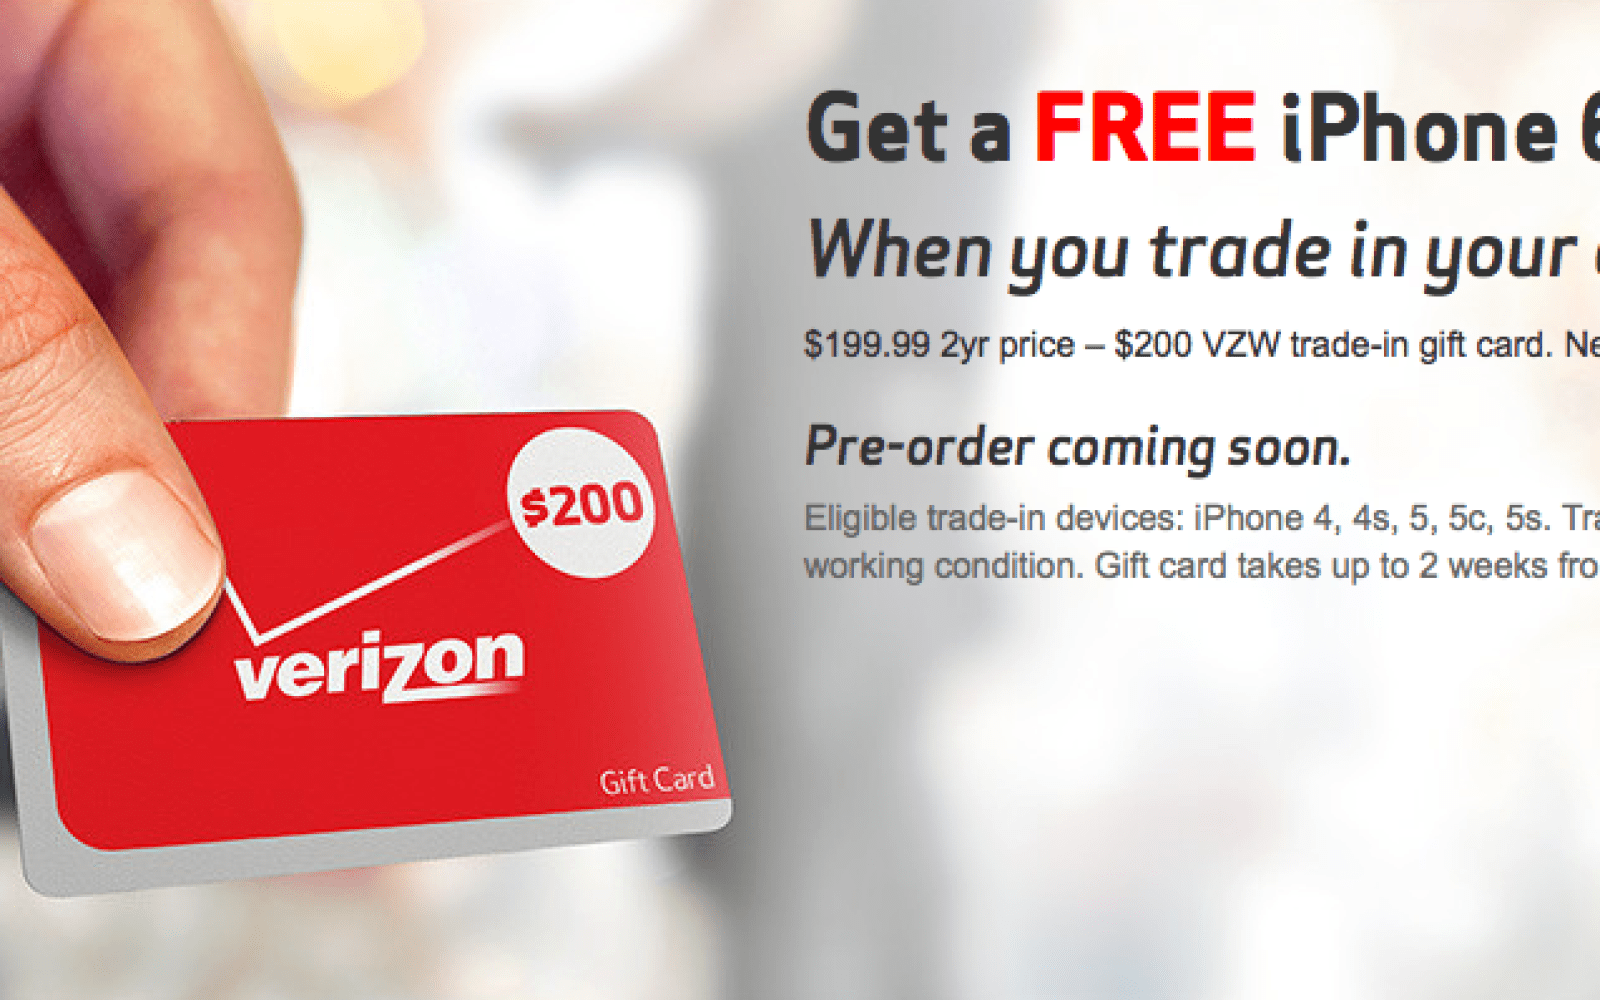 Upgrade your iPhone 4 (or newer) to a Verizon iPhone 6 for free w/ 2-yr contract (updated)